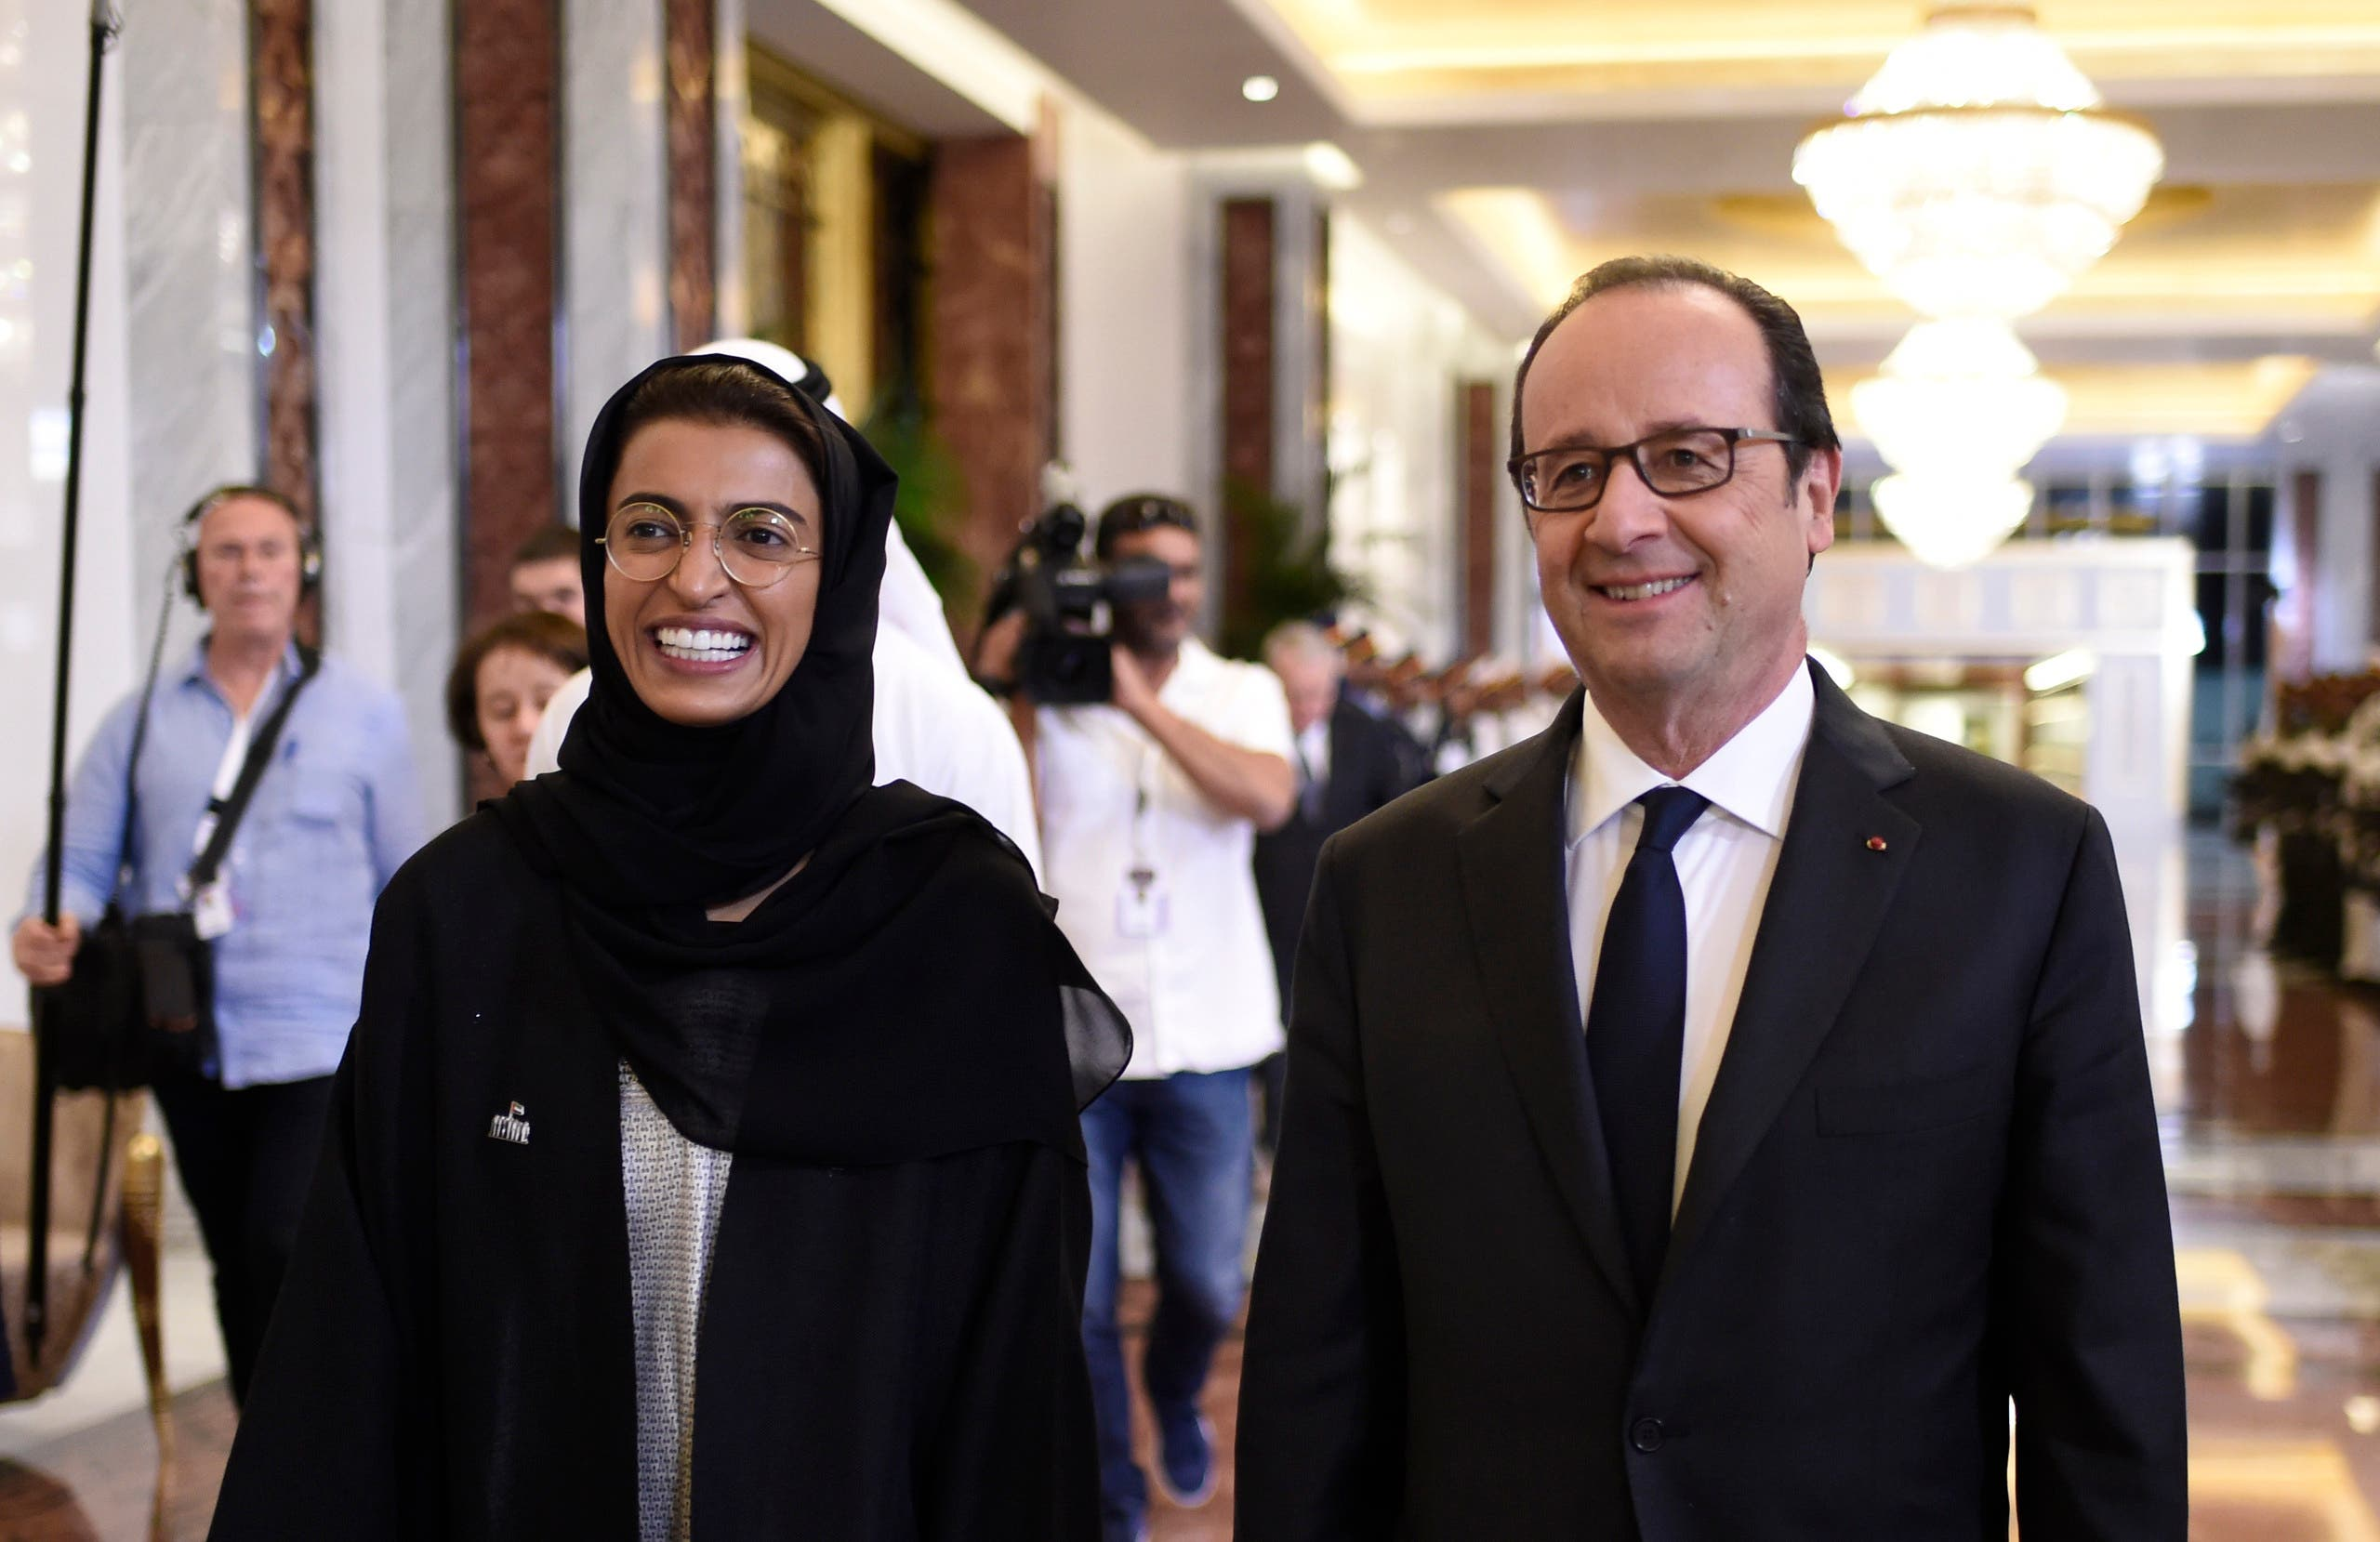 French President Francois Hollande (R) meets with Emirati State Minister to the United Arab Emirates' Federal National Council, Noura al-Kaabi, upon his arrival on December 2, 2016 in Abu Dhabi. afp